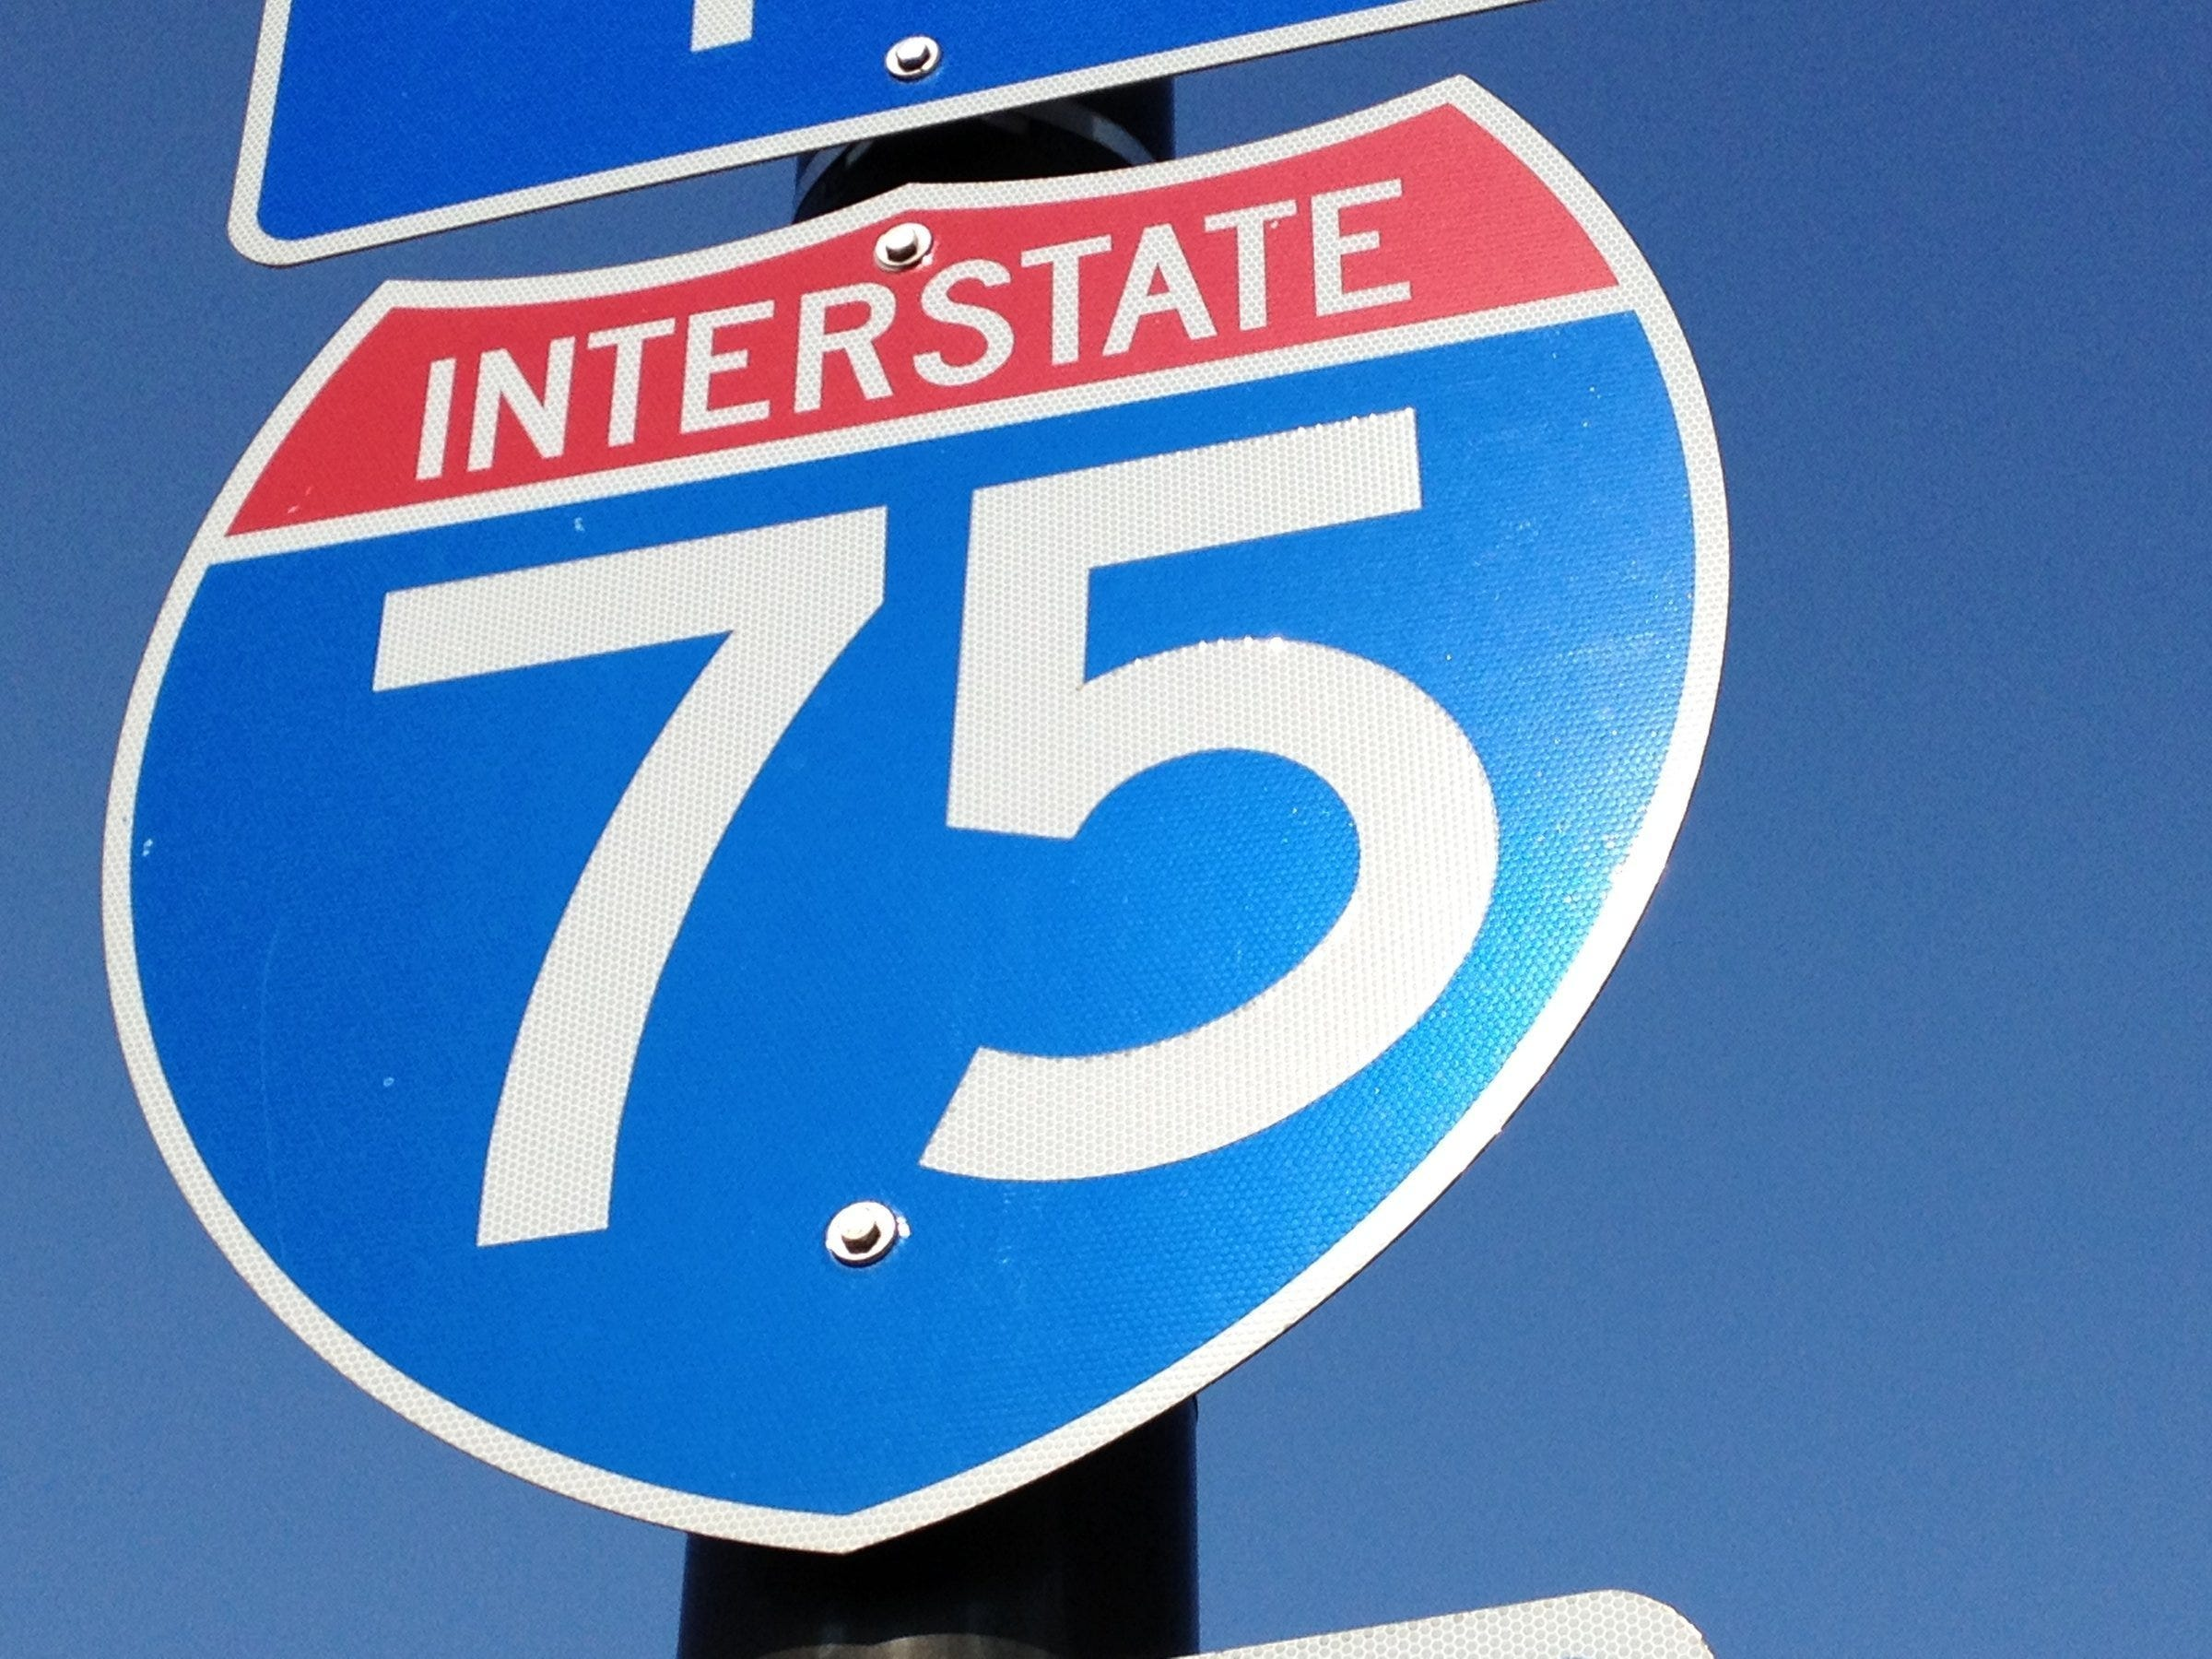 Northbound I-75 to remain closed for repairs until Wednesday from I-696 to 12 Mile